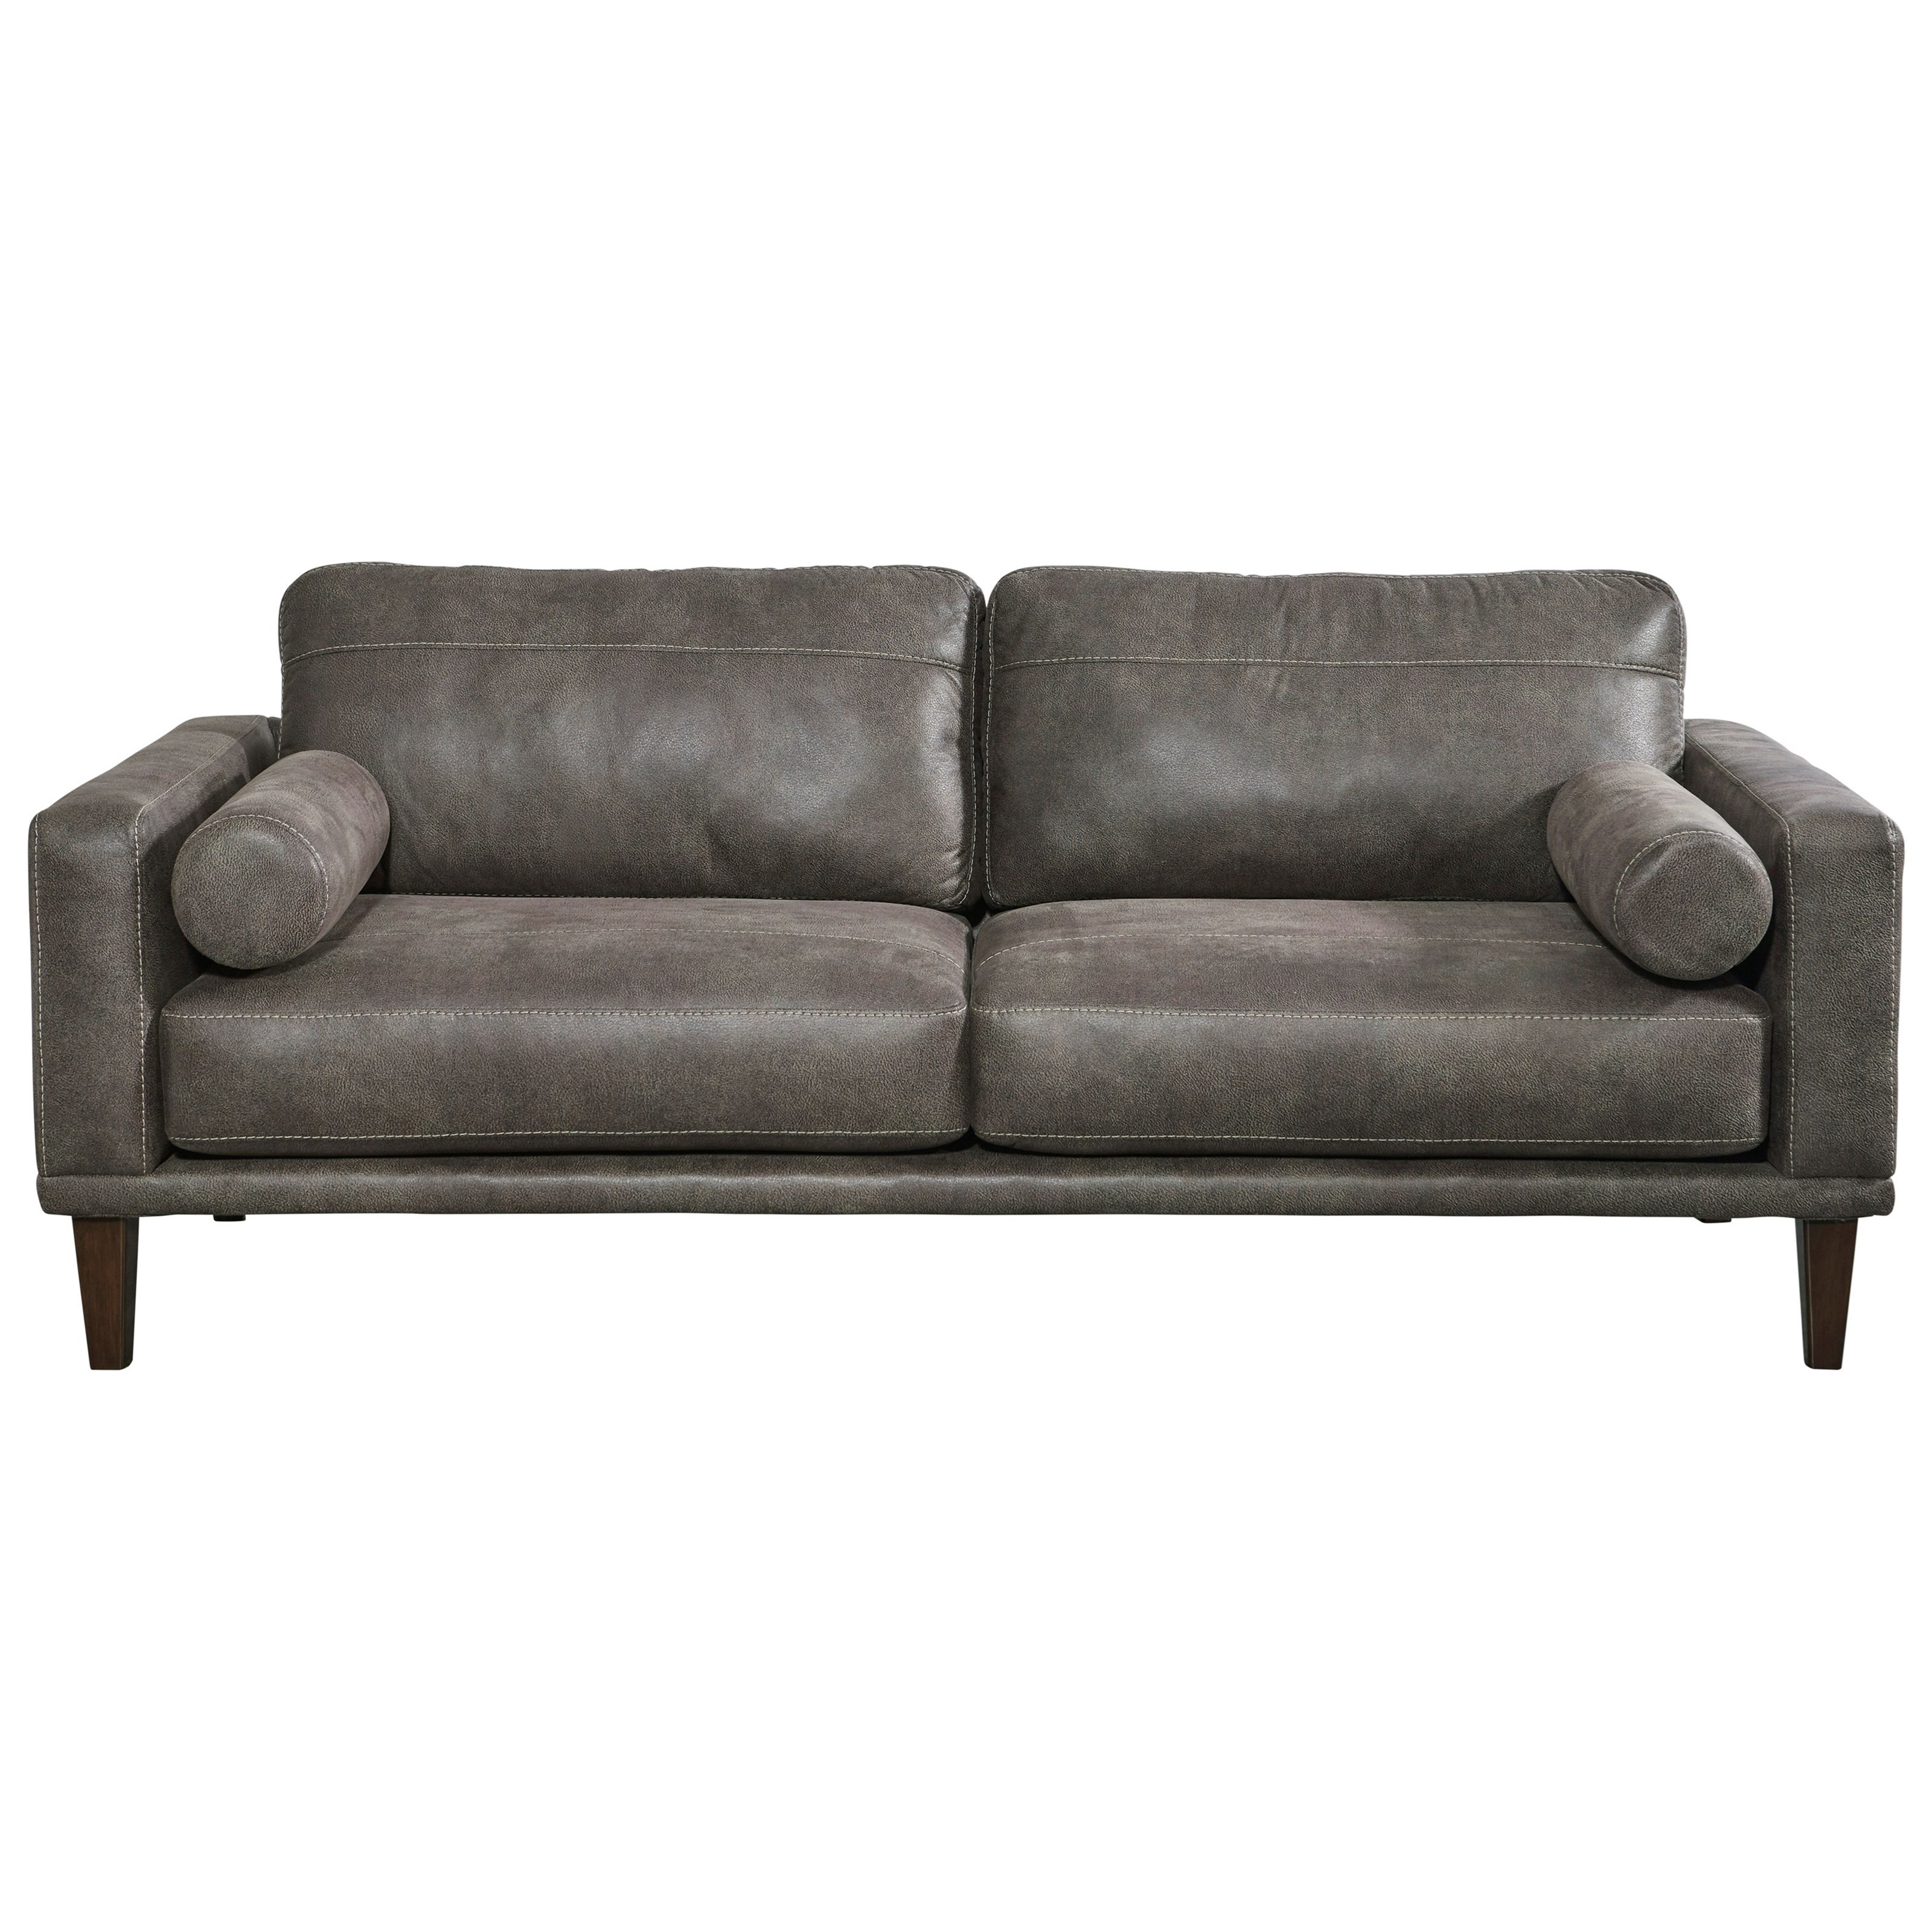 Arroyo Sofa by Signature Design by Ashley at Northeast Factory Direct